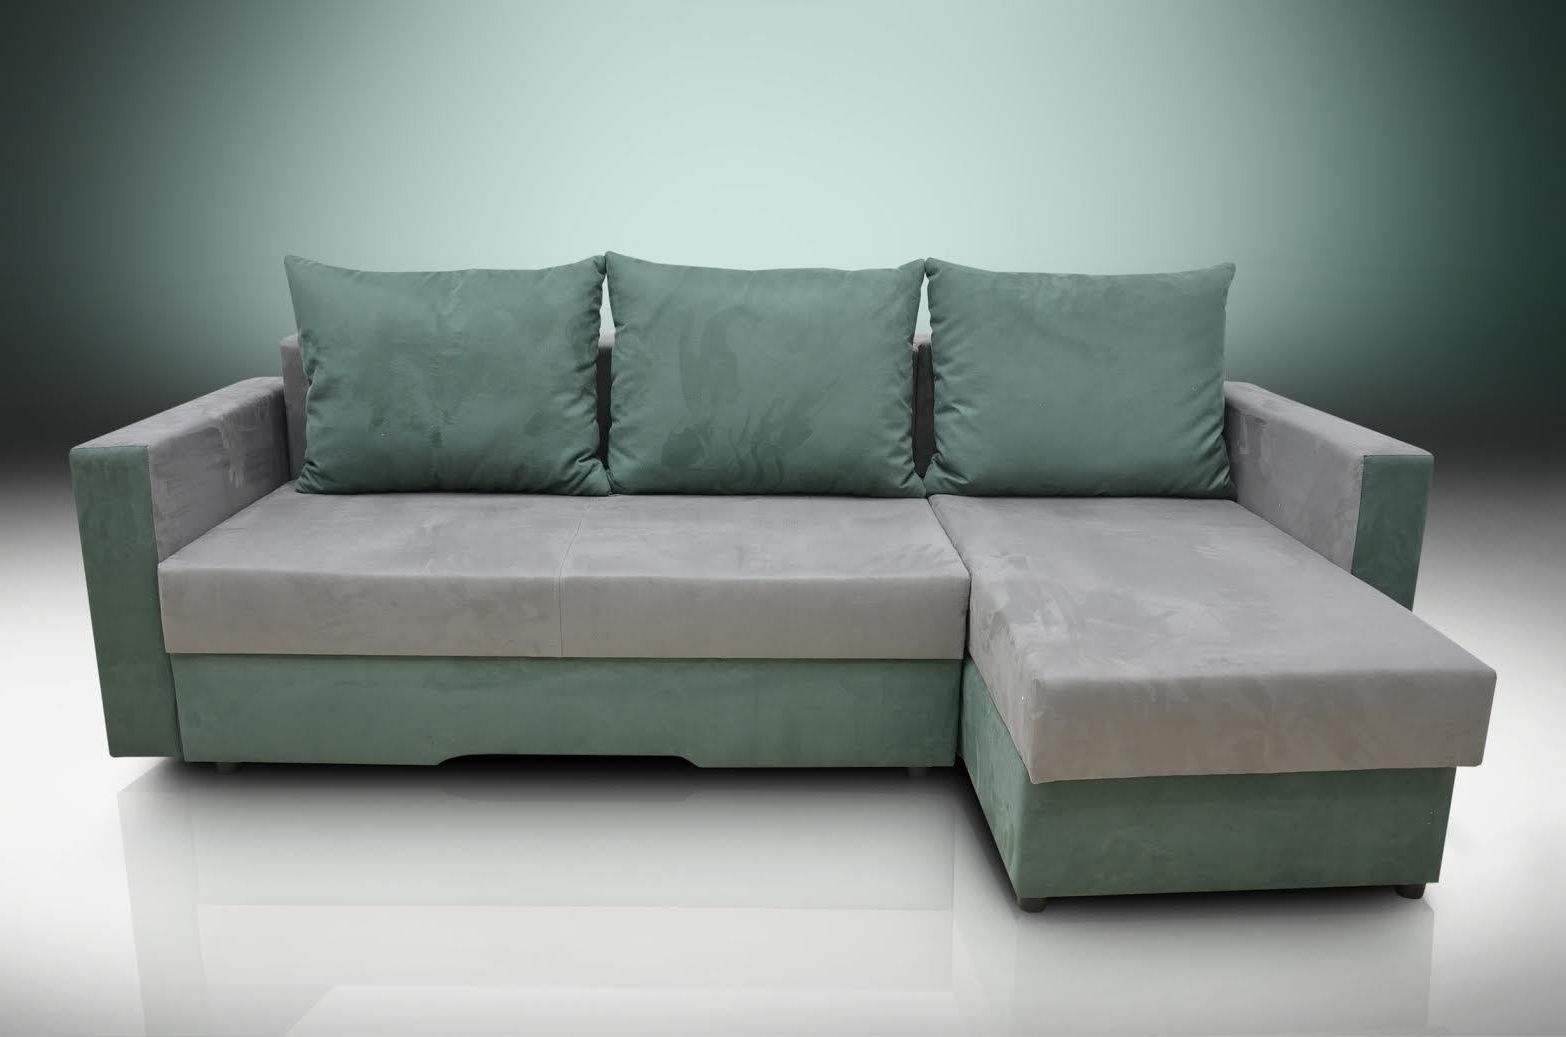 Sofa Bed Bristol Grey/forest Green Faux Suede Fabric Pertaining To 2019 Faux Suede Sofas (View 20 of 20)